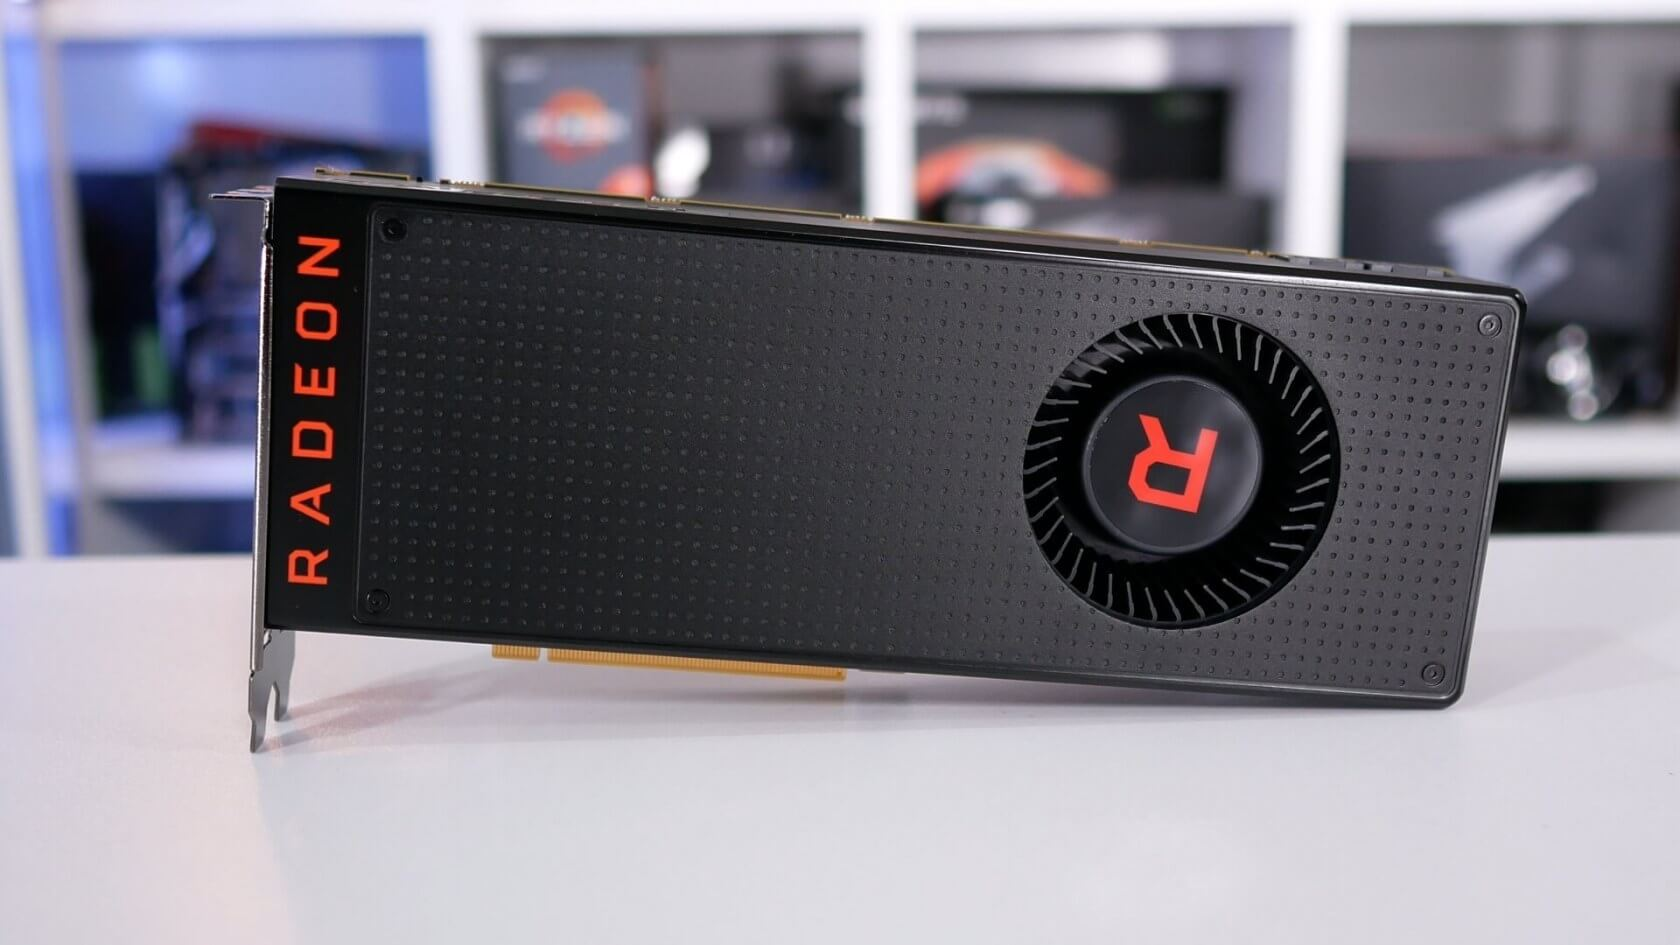 Rumor Amd To Unveil Next Gen Rdna 2 Gpu With Ray Tracing Support At Ces 2020